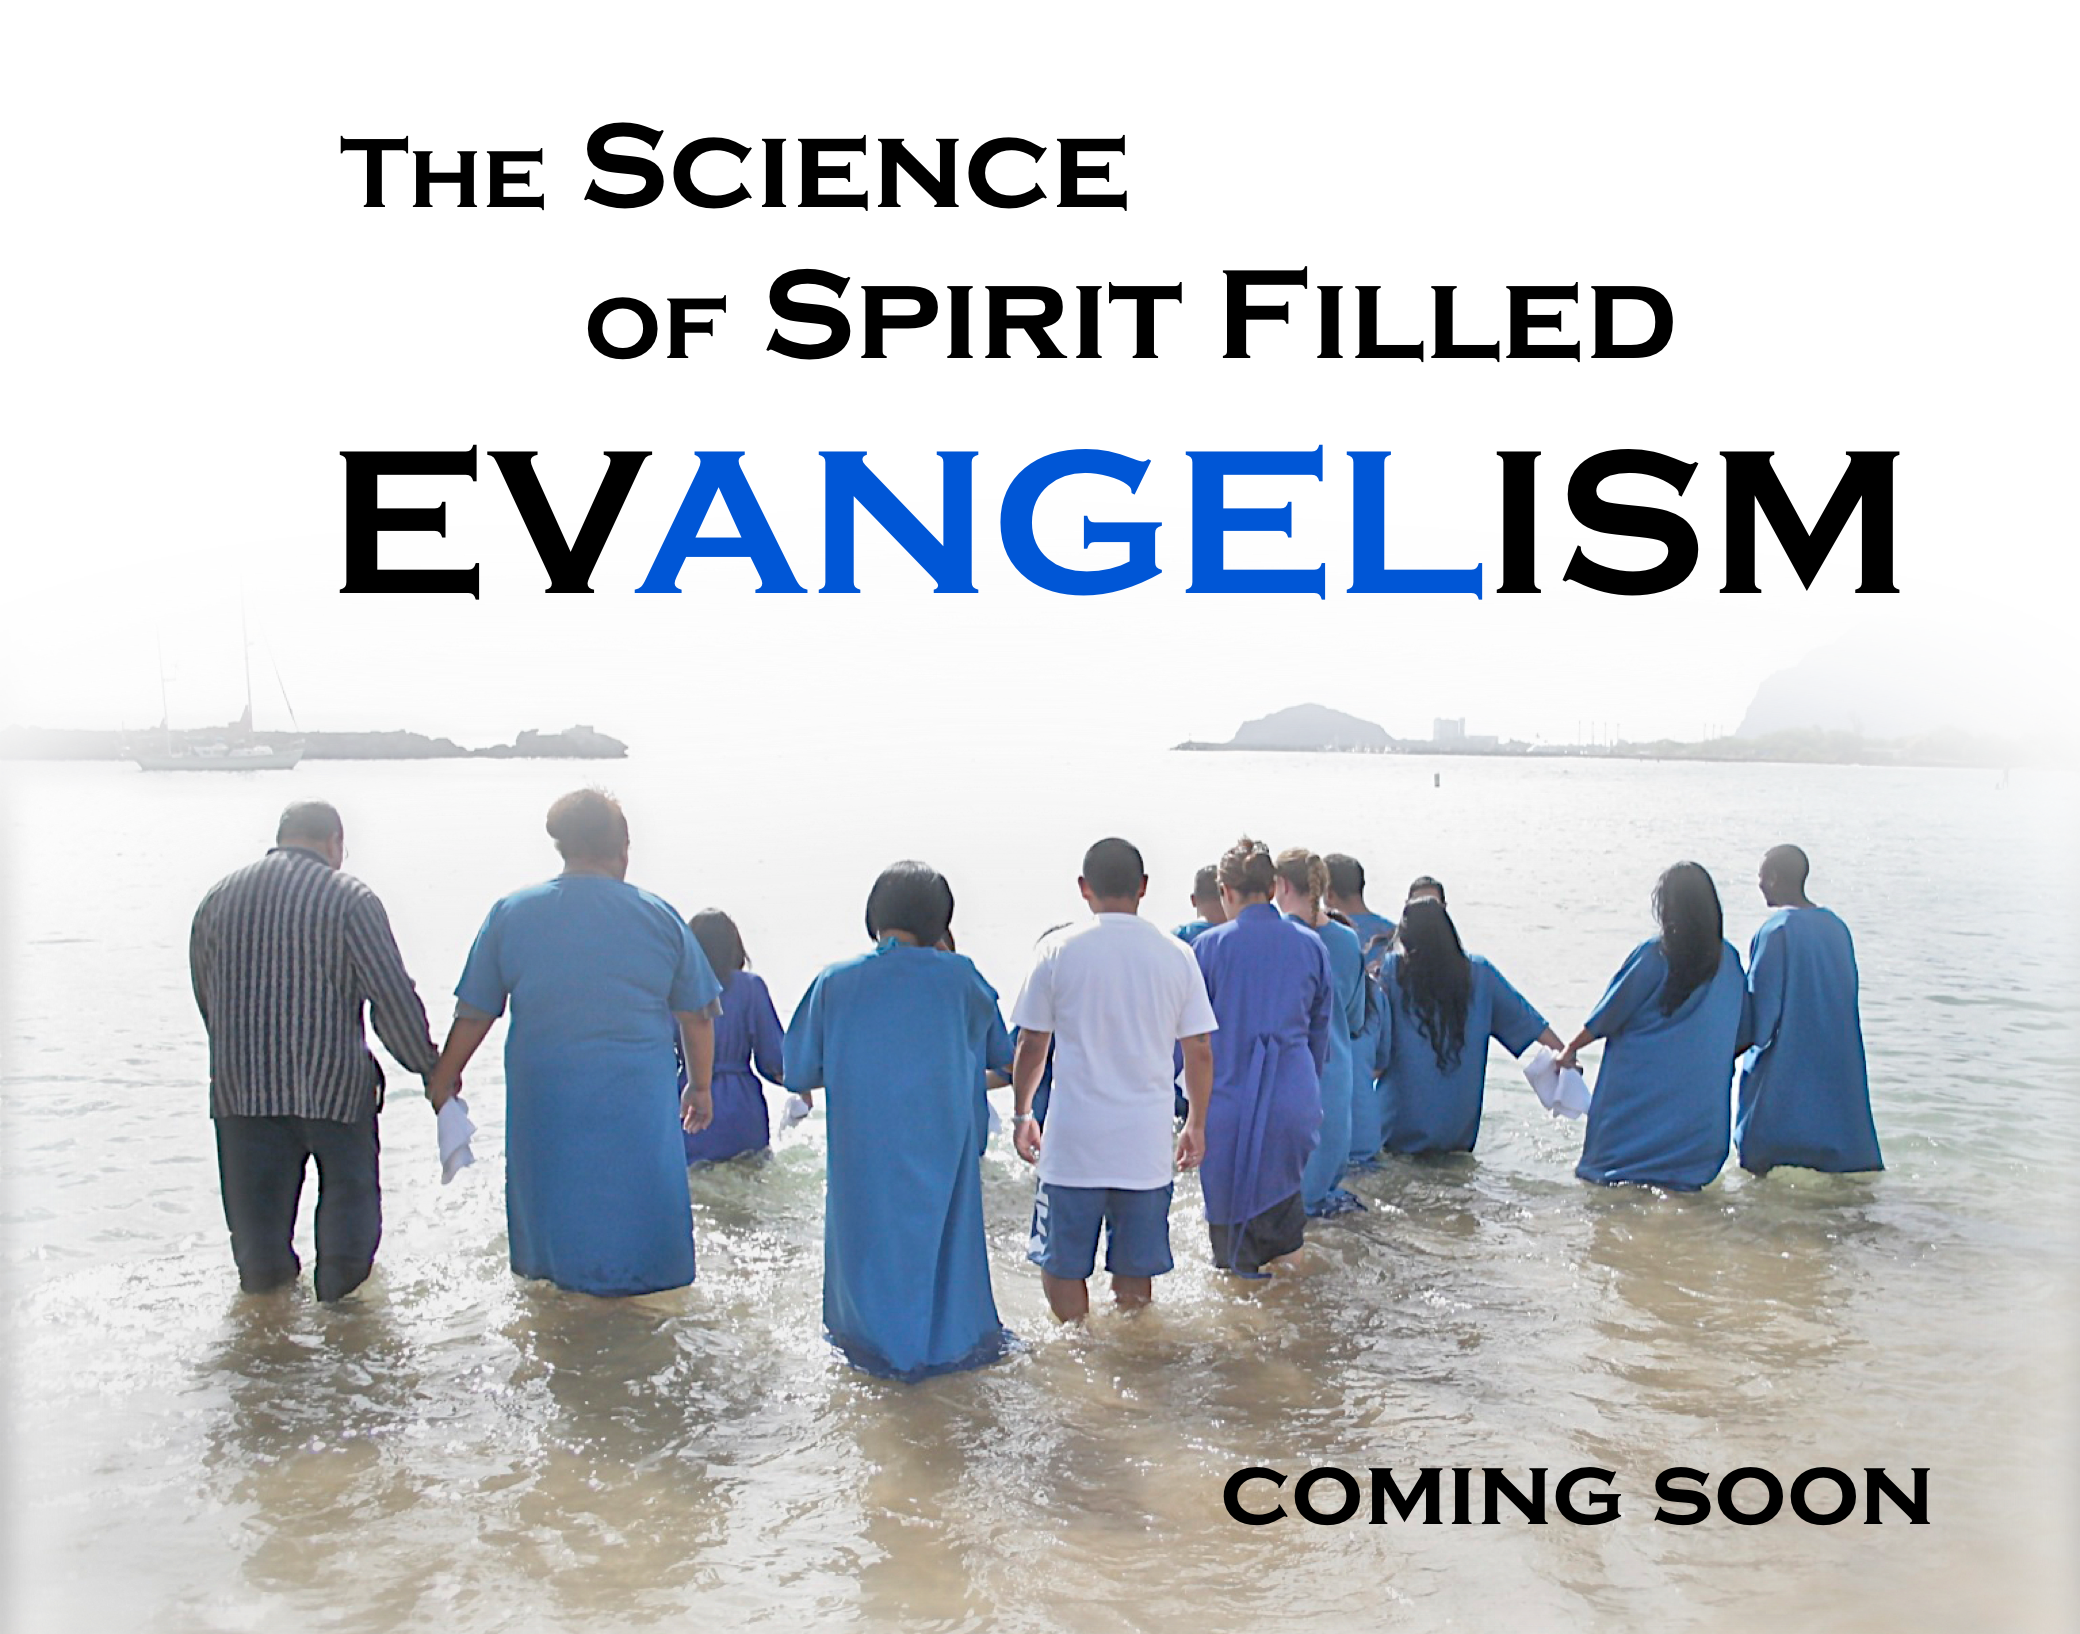 The Science of Spirit Filled Evangelism